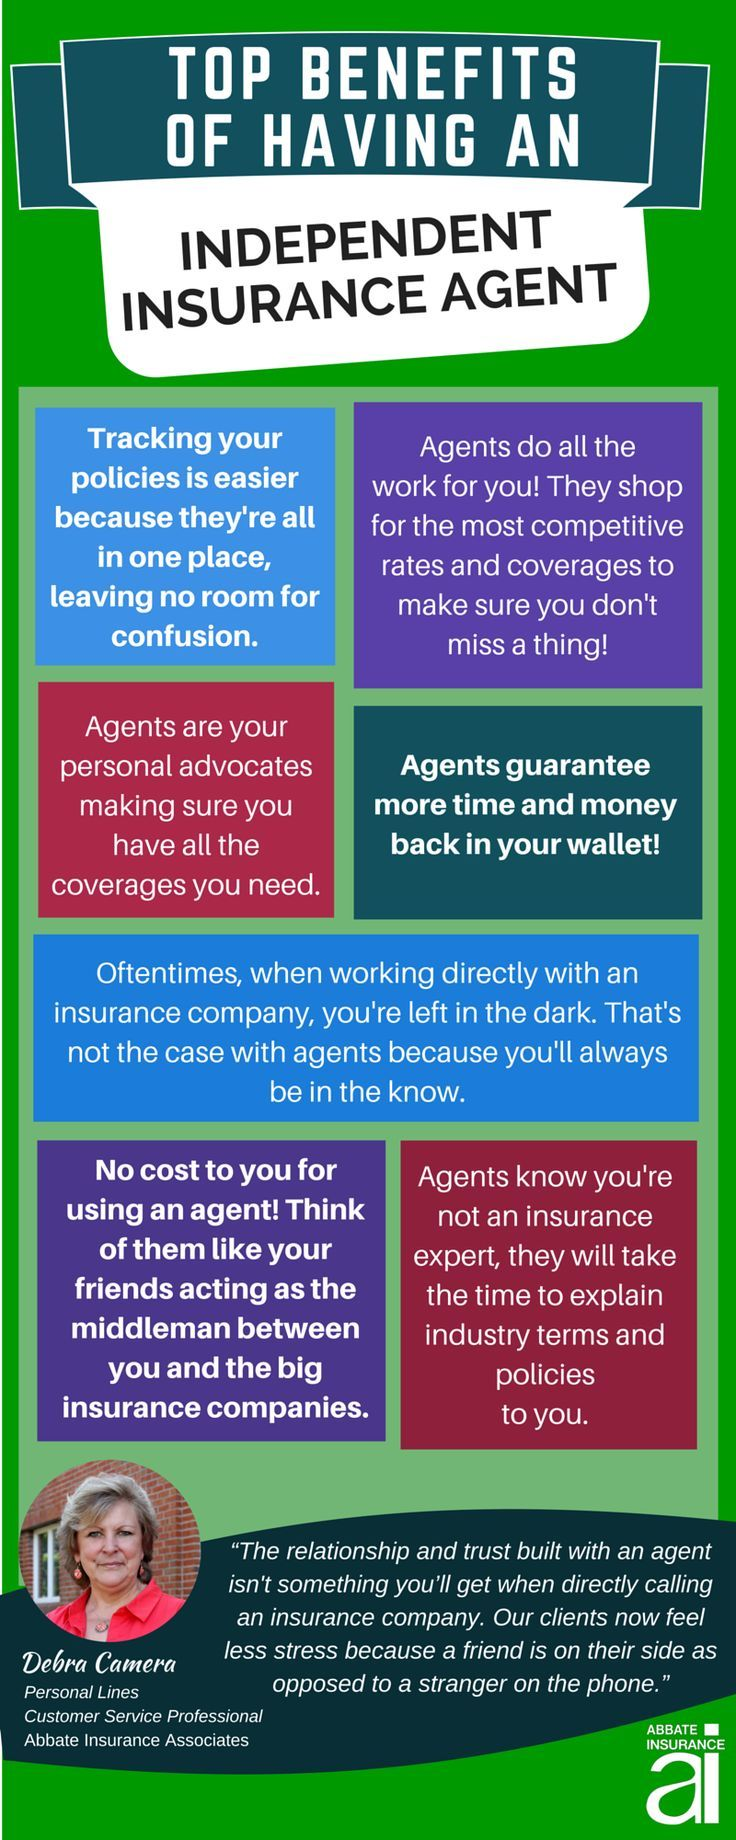 Top Benefits of Having an Independent Insurance Agent | Abbate Insurance 1